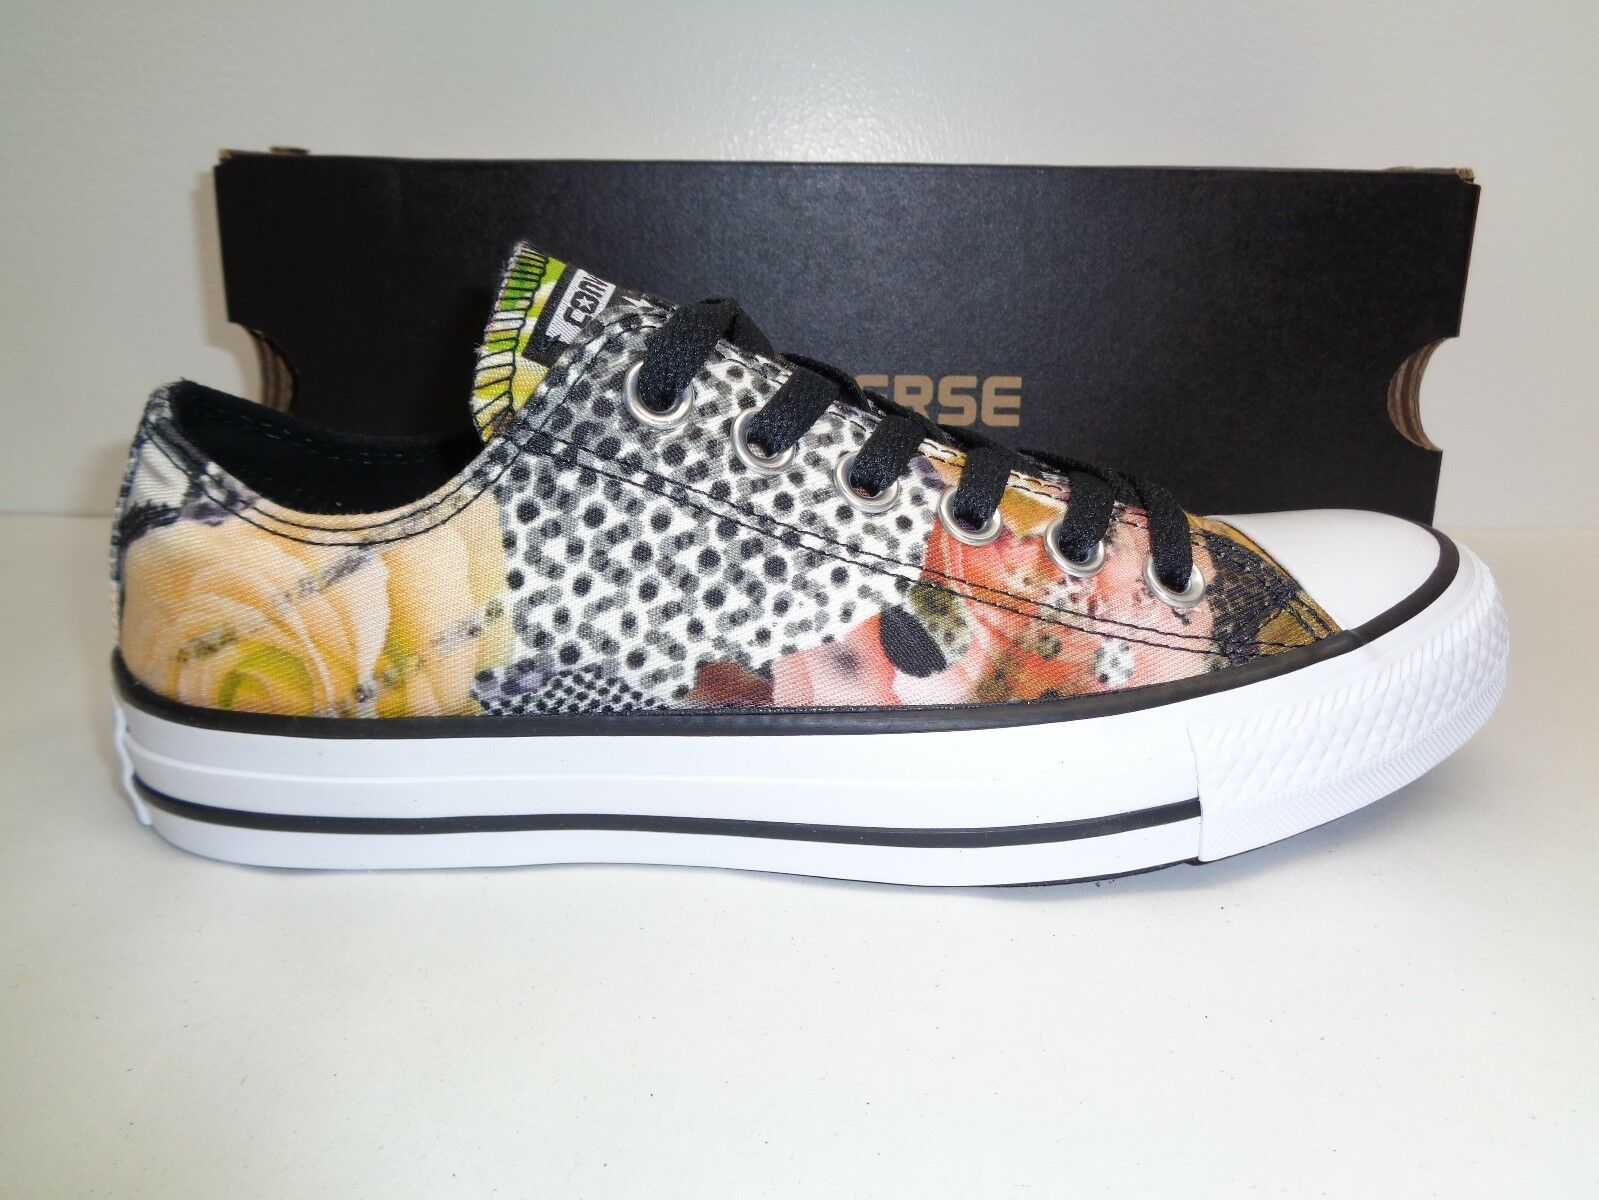 Converse Size 10 DIGITAL FLORAL OX Canvas Fashion Sneakers New Womens Shoes